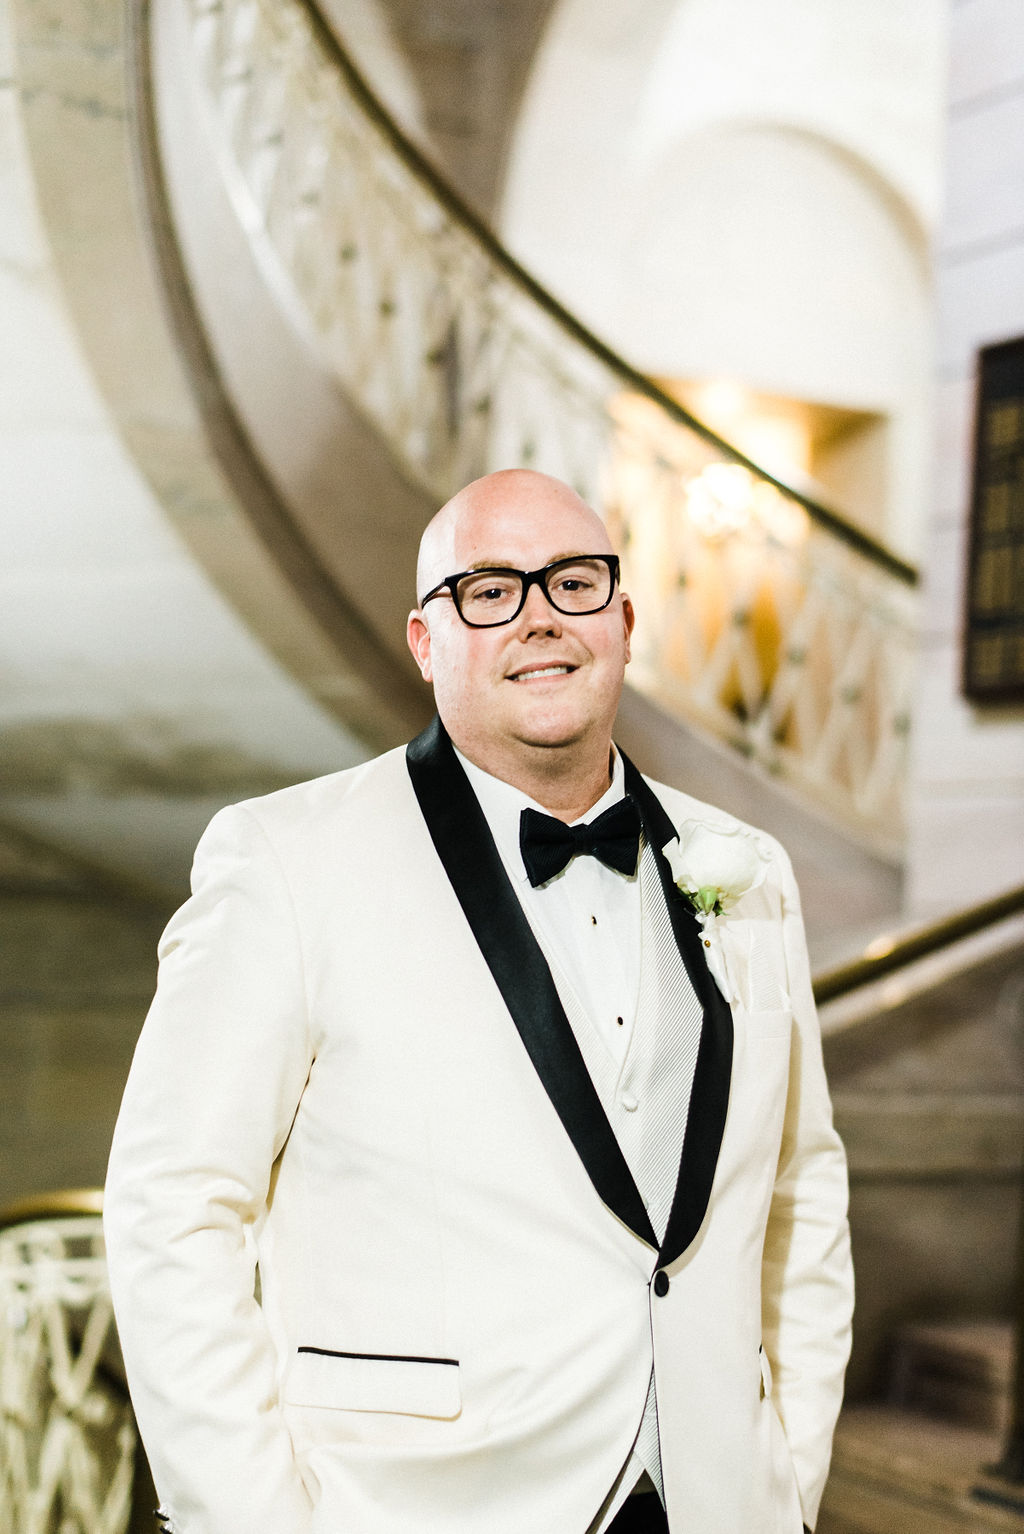 Tyler Anderson looking fabulous on his wedding day wearing a Vera Wang all white suit and bow tie - Pearl Weddings & Events